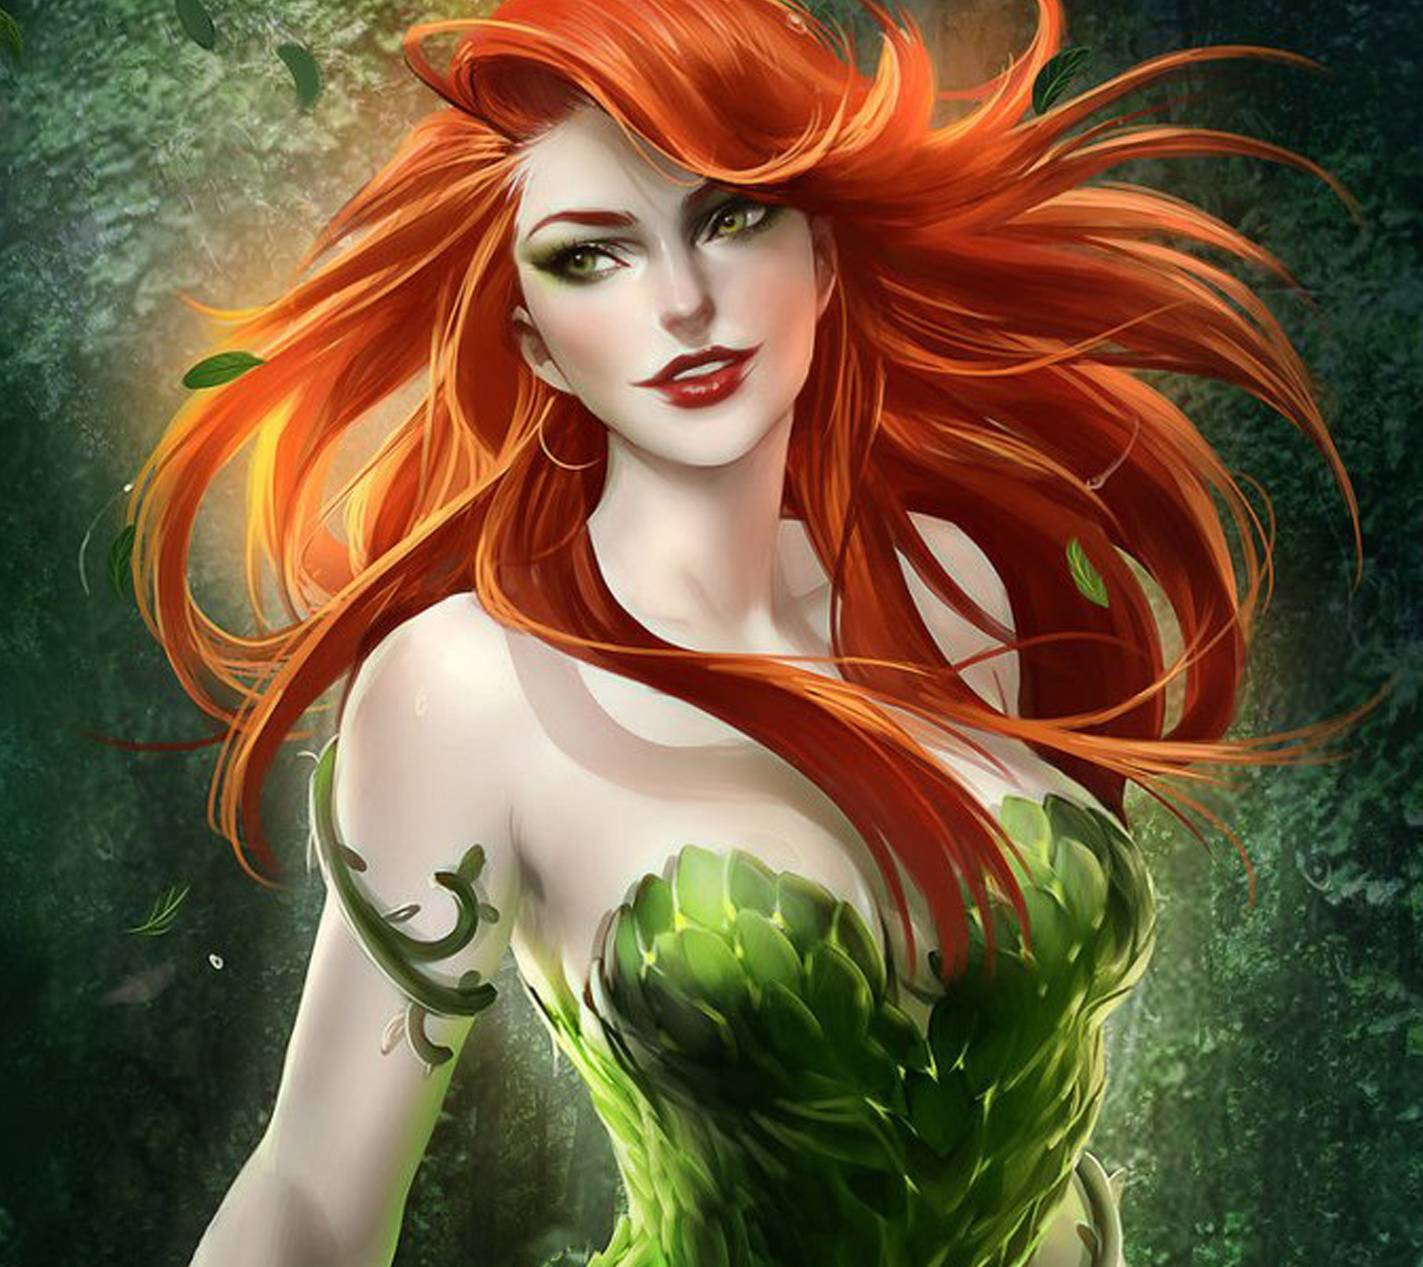 Poison Ivy Wallpapers Top Free Poison Ivy Backgrounds